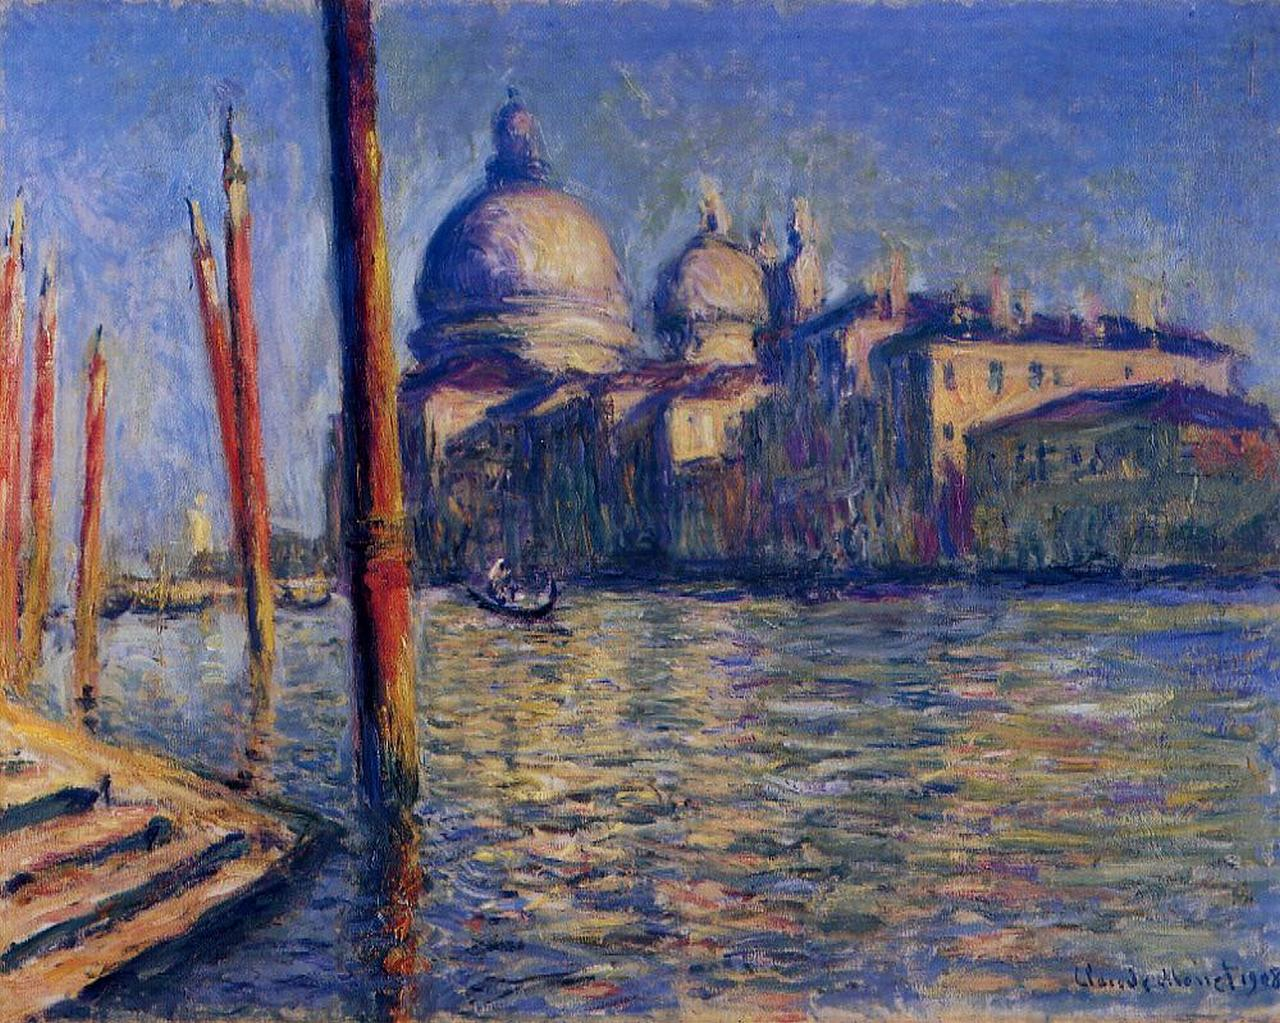 http://uploads0.wikipaintings.org/images/claude-monet/the-grand-canal-and-santa-maria-della-salute.jpg